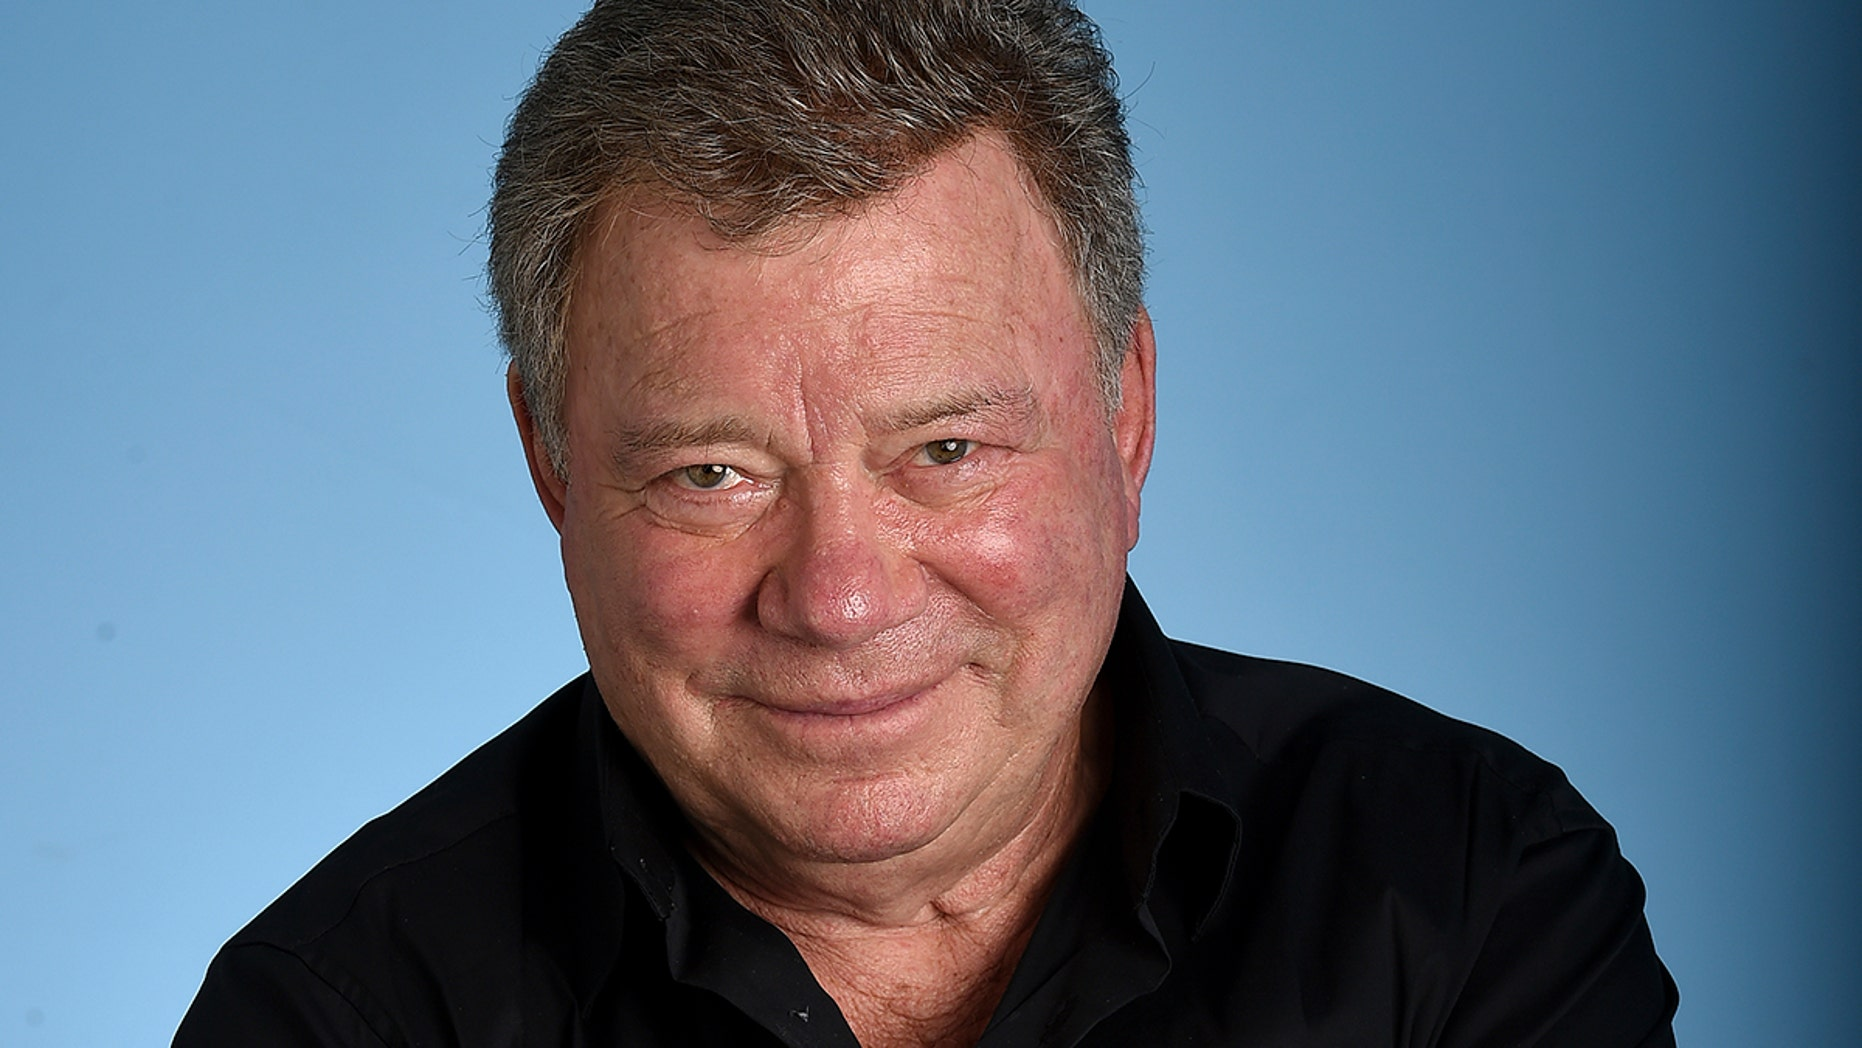 William Shatner asked Facebook for an explanation after a fan noticed it was promoting a false article about his death.